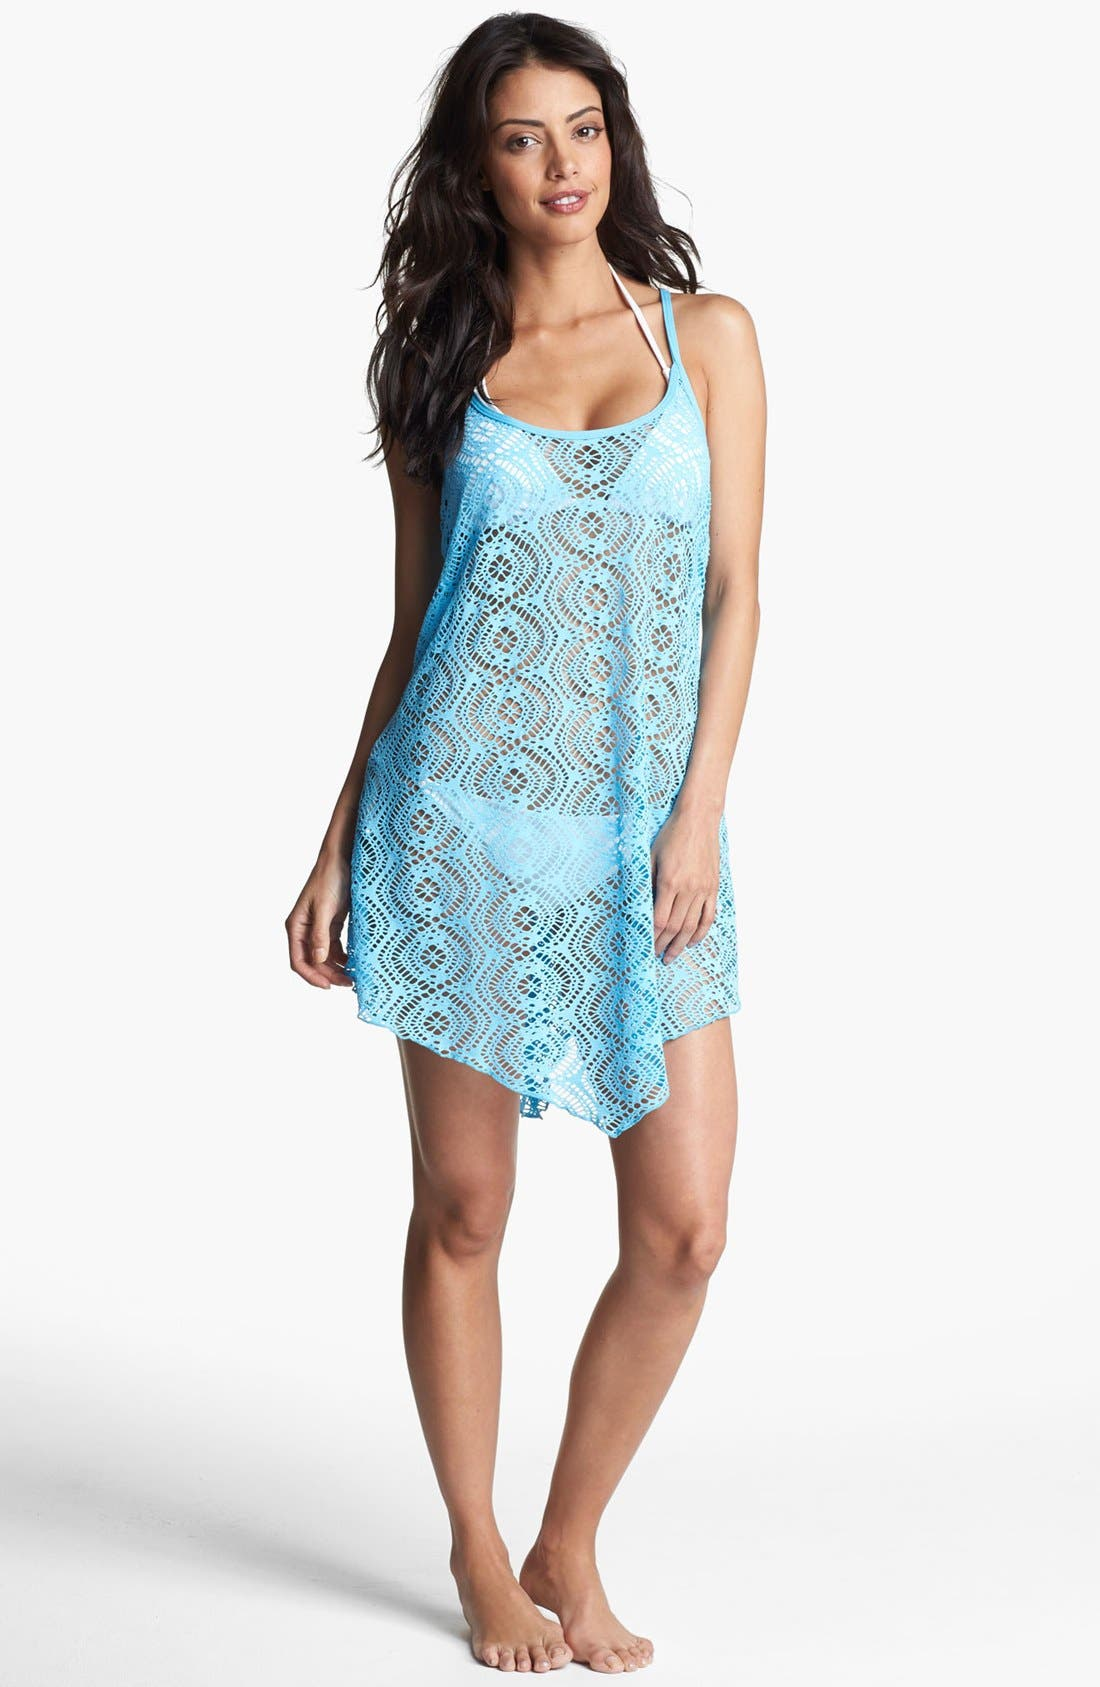 Alternate Image 1 Selected - Becca Strappy Crochet Cover-Up Dress